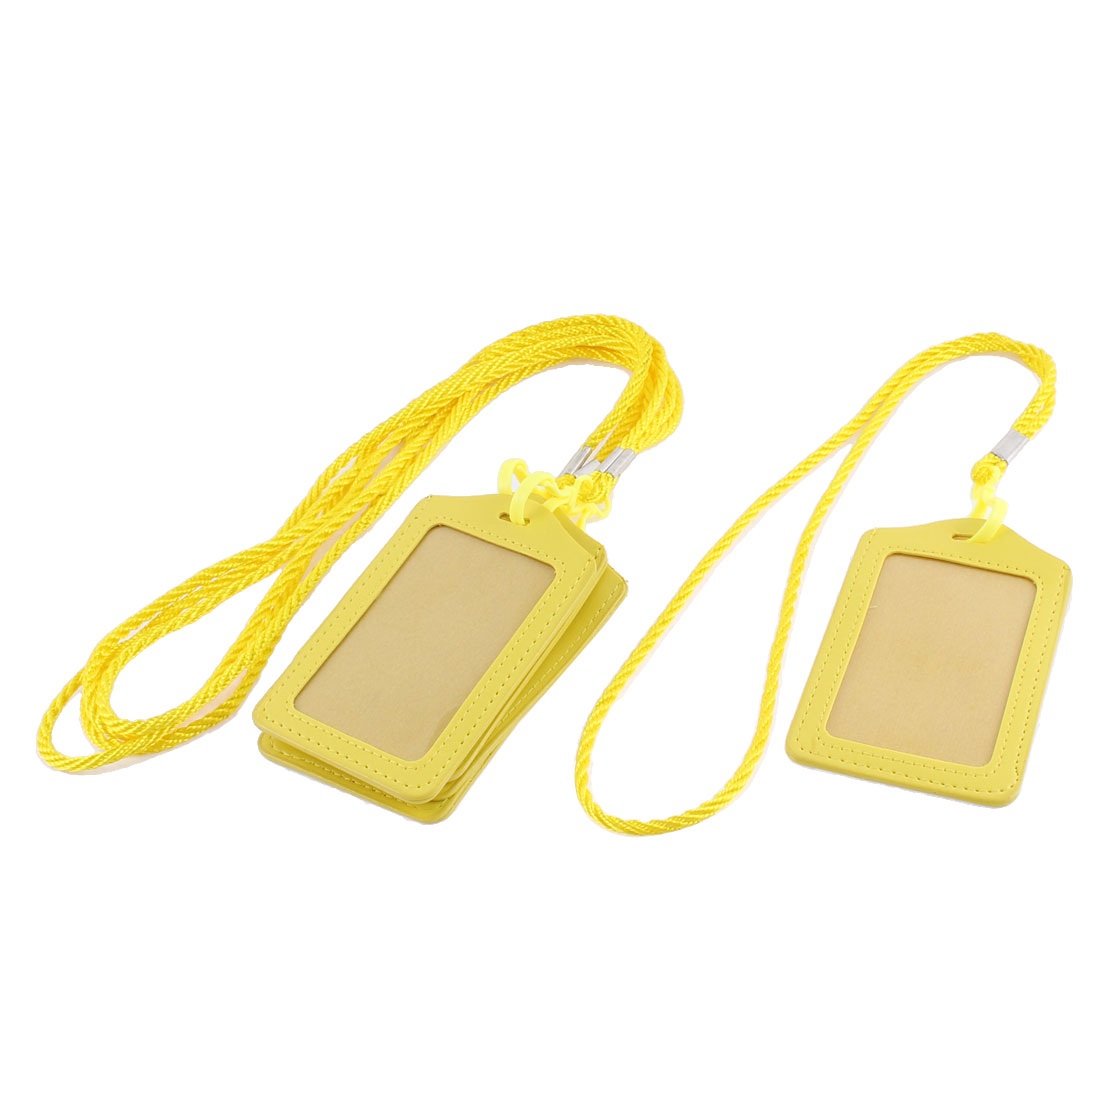 Lanyard Vertical Office Name ID Card Badge Holder Container Yellow 5pcs